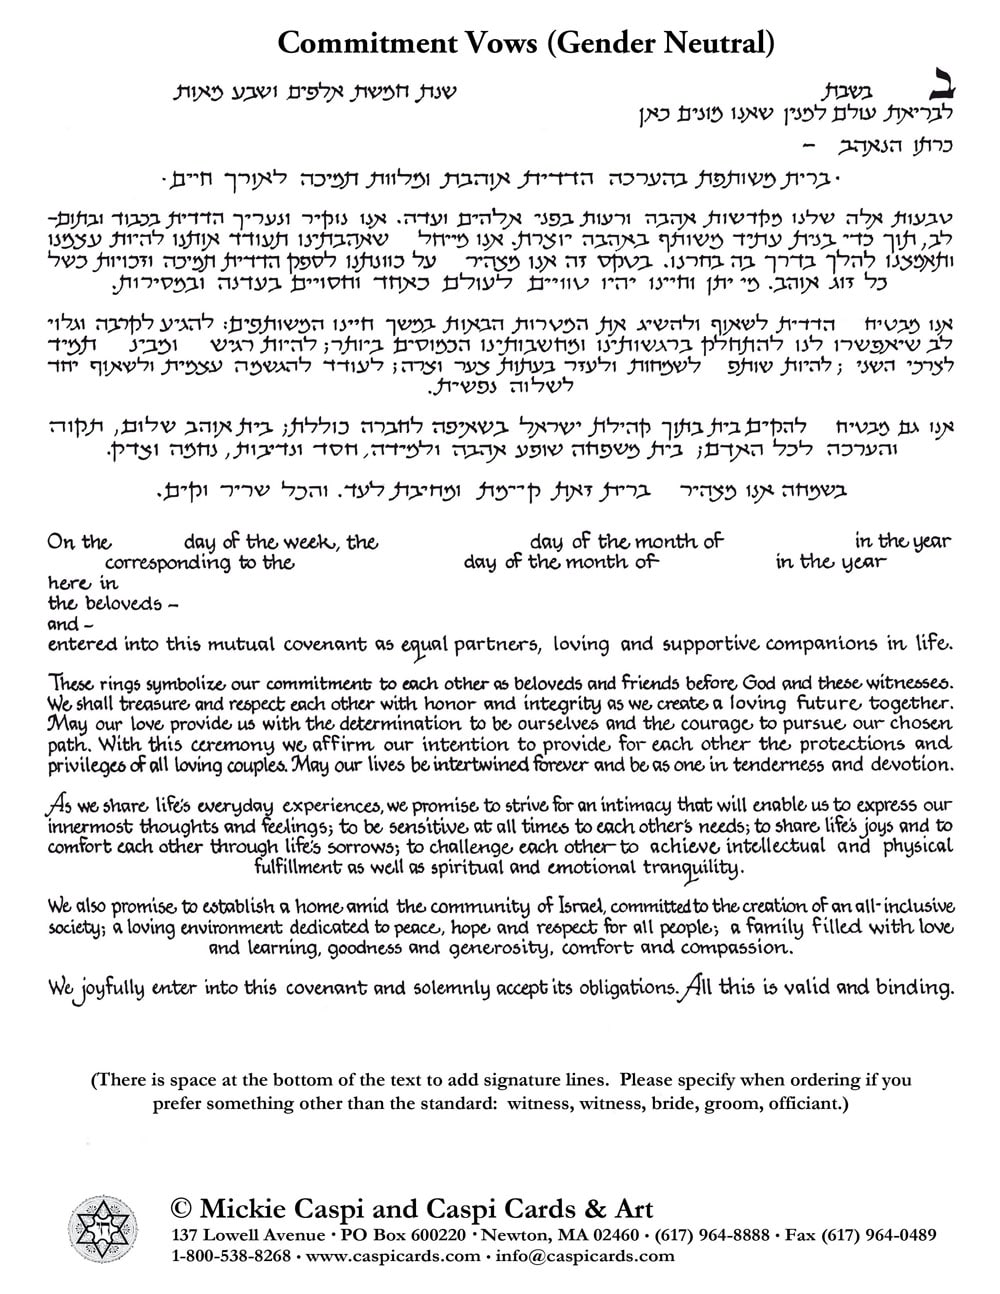 Gender neutral ketubah text for same sex weddings by mickie caspi at the time ketubot plural for ketubah were either hand drawn original artwork whereby the whole text was written by hand in calligraphy stopboris Gallery